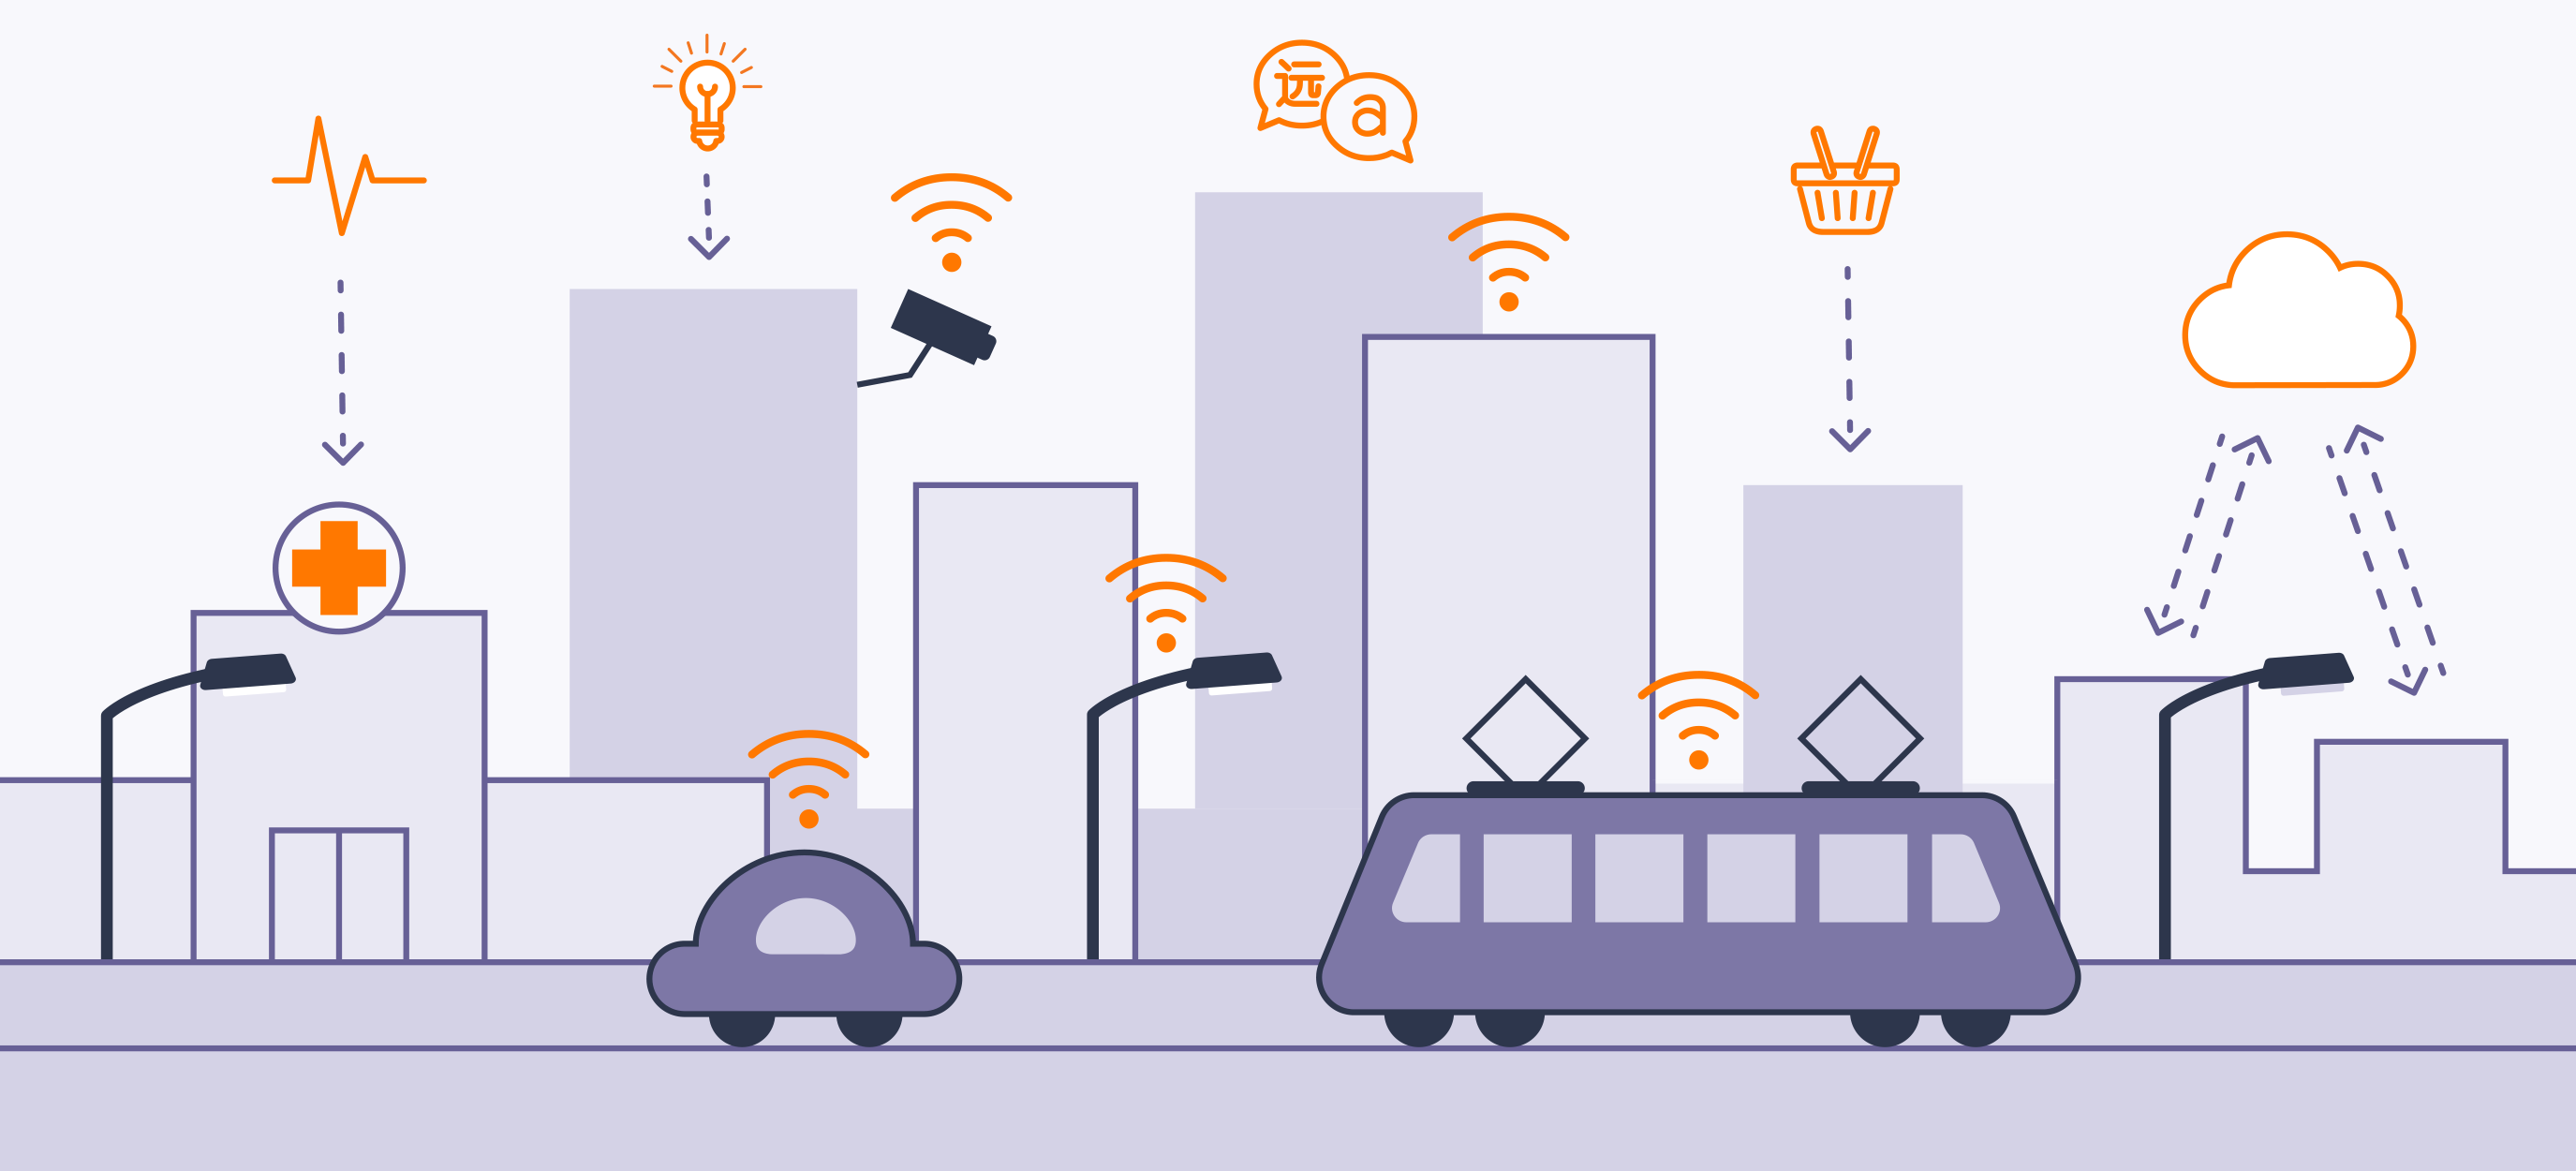 What_is_the_IoT-Smart_City-2